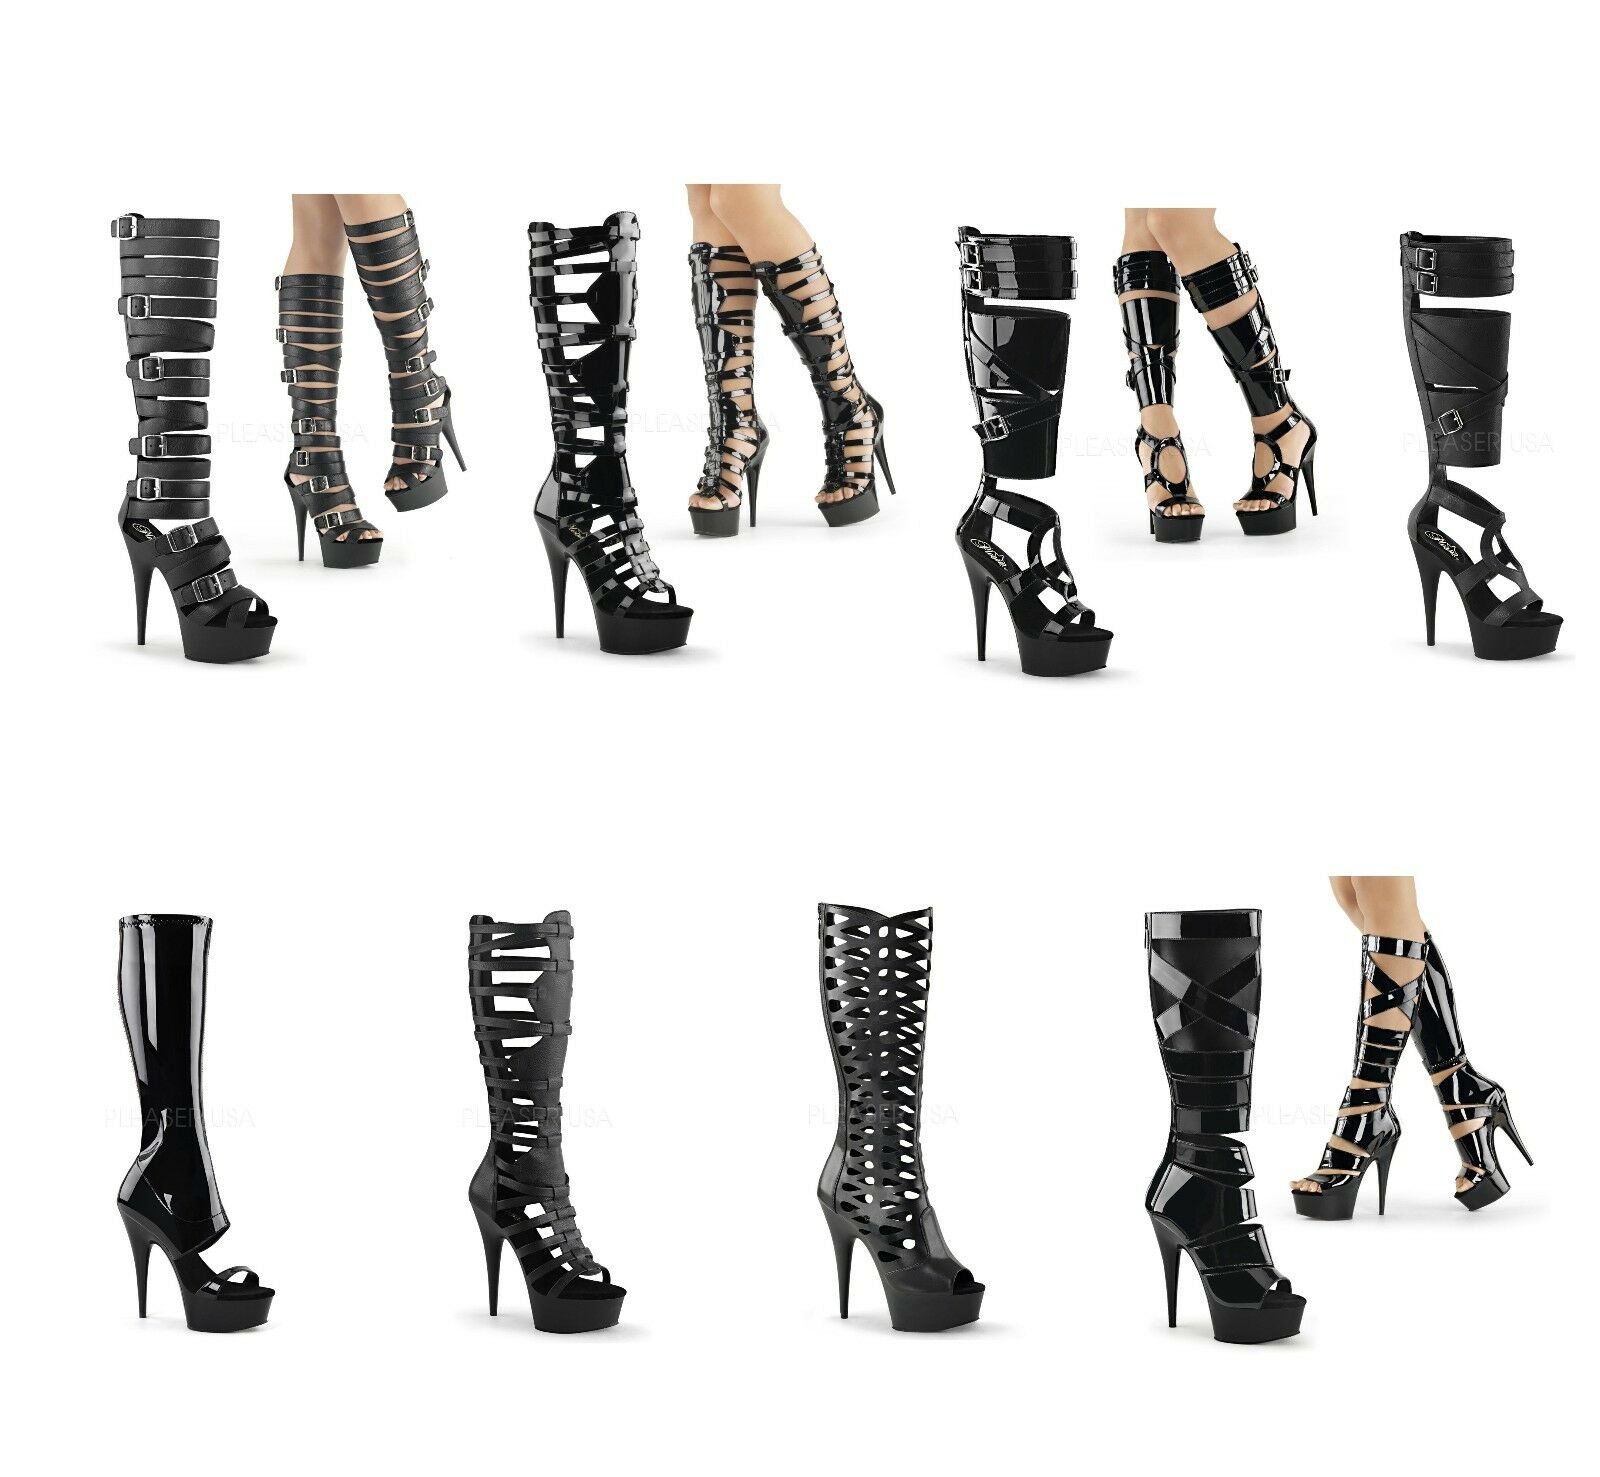 Pleaser DELIGHT-600 Sexy Exotic Dancing Platform Gladiator Sandal Knee stivali